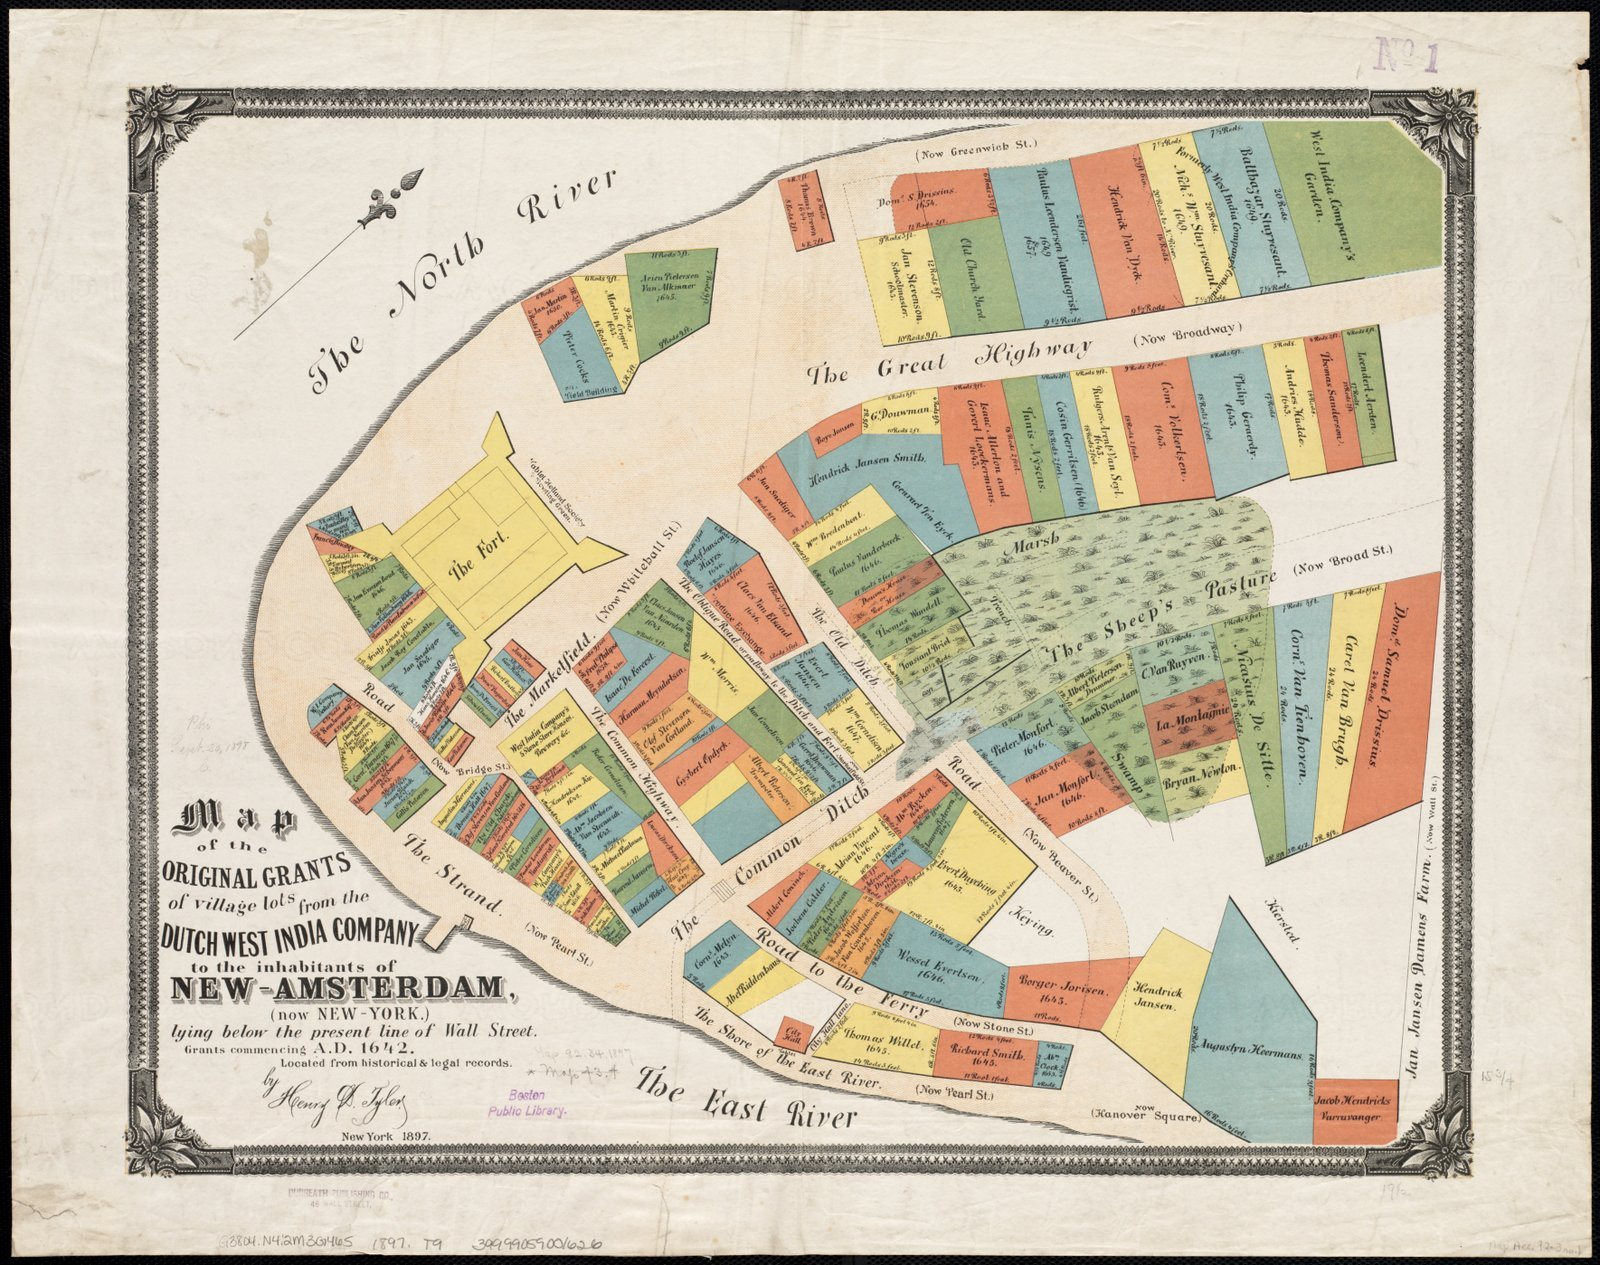 Historic Map   Map of the original grants of village lots from the Dutch West India Company to the inhabitants of New-Amsterdam (now New-York)   Antique Vintage Reproduction